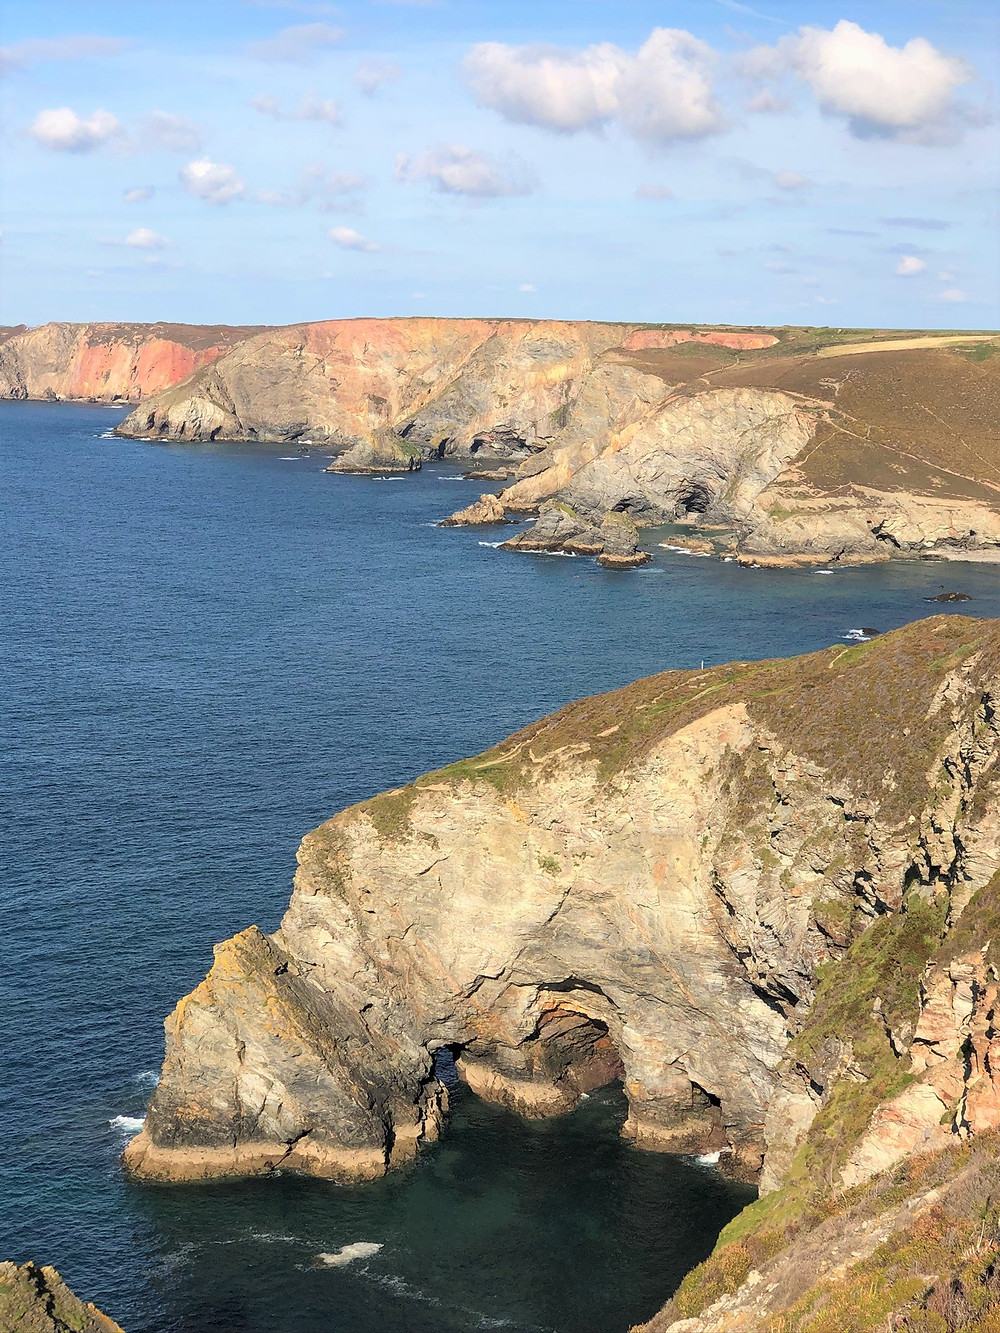 Two natural arches in the area are referred to as Polberro Cove in St Agnes, England. Cornwall coastline